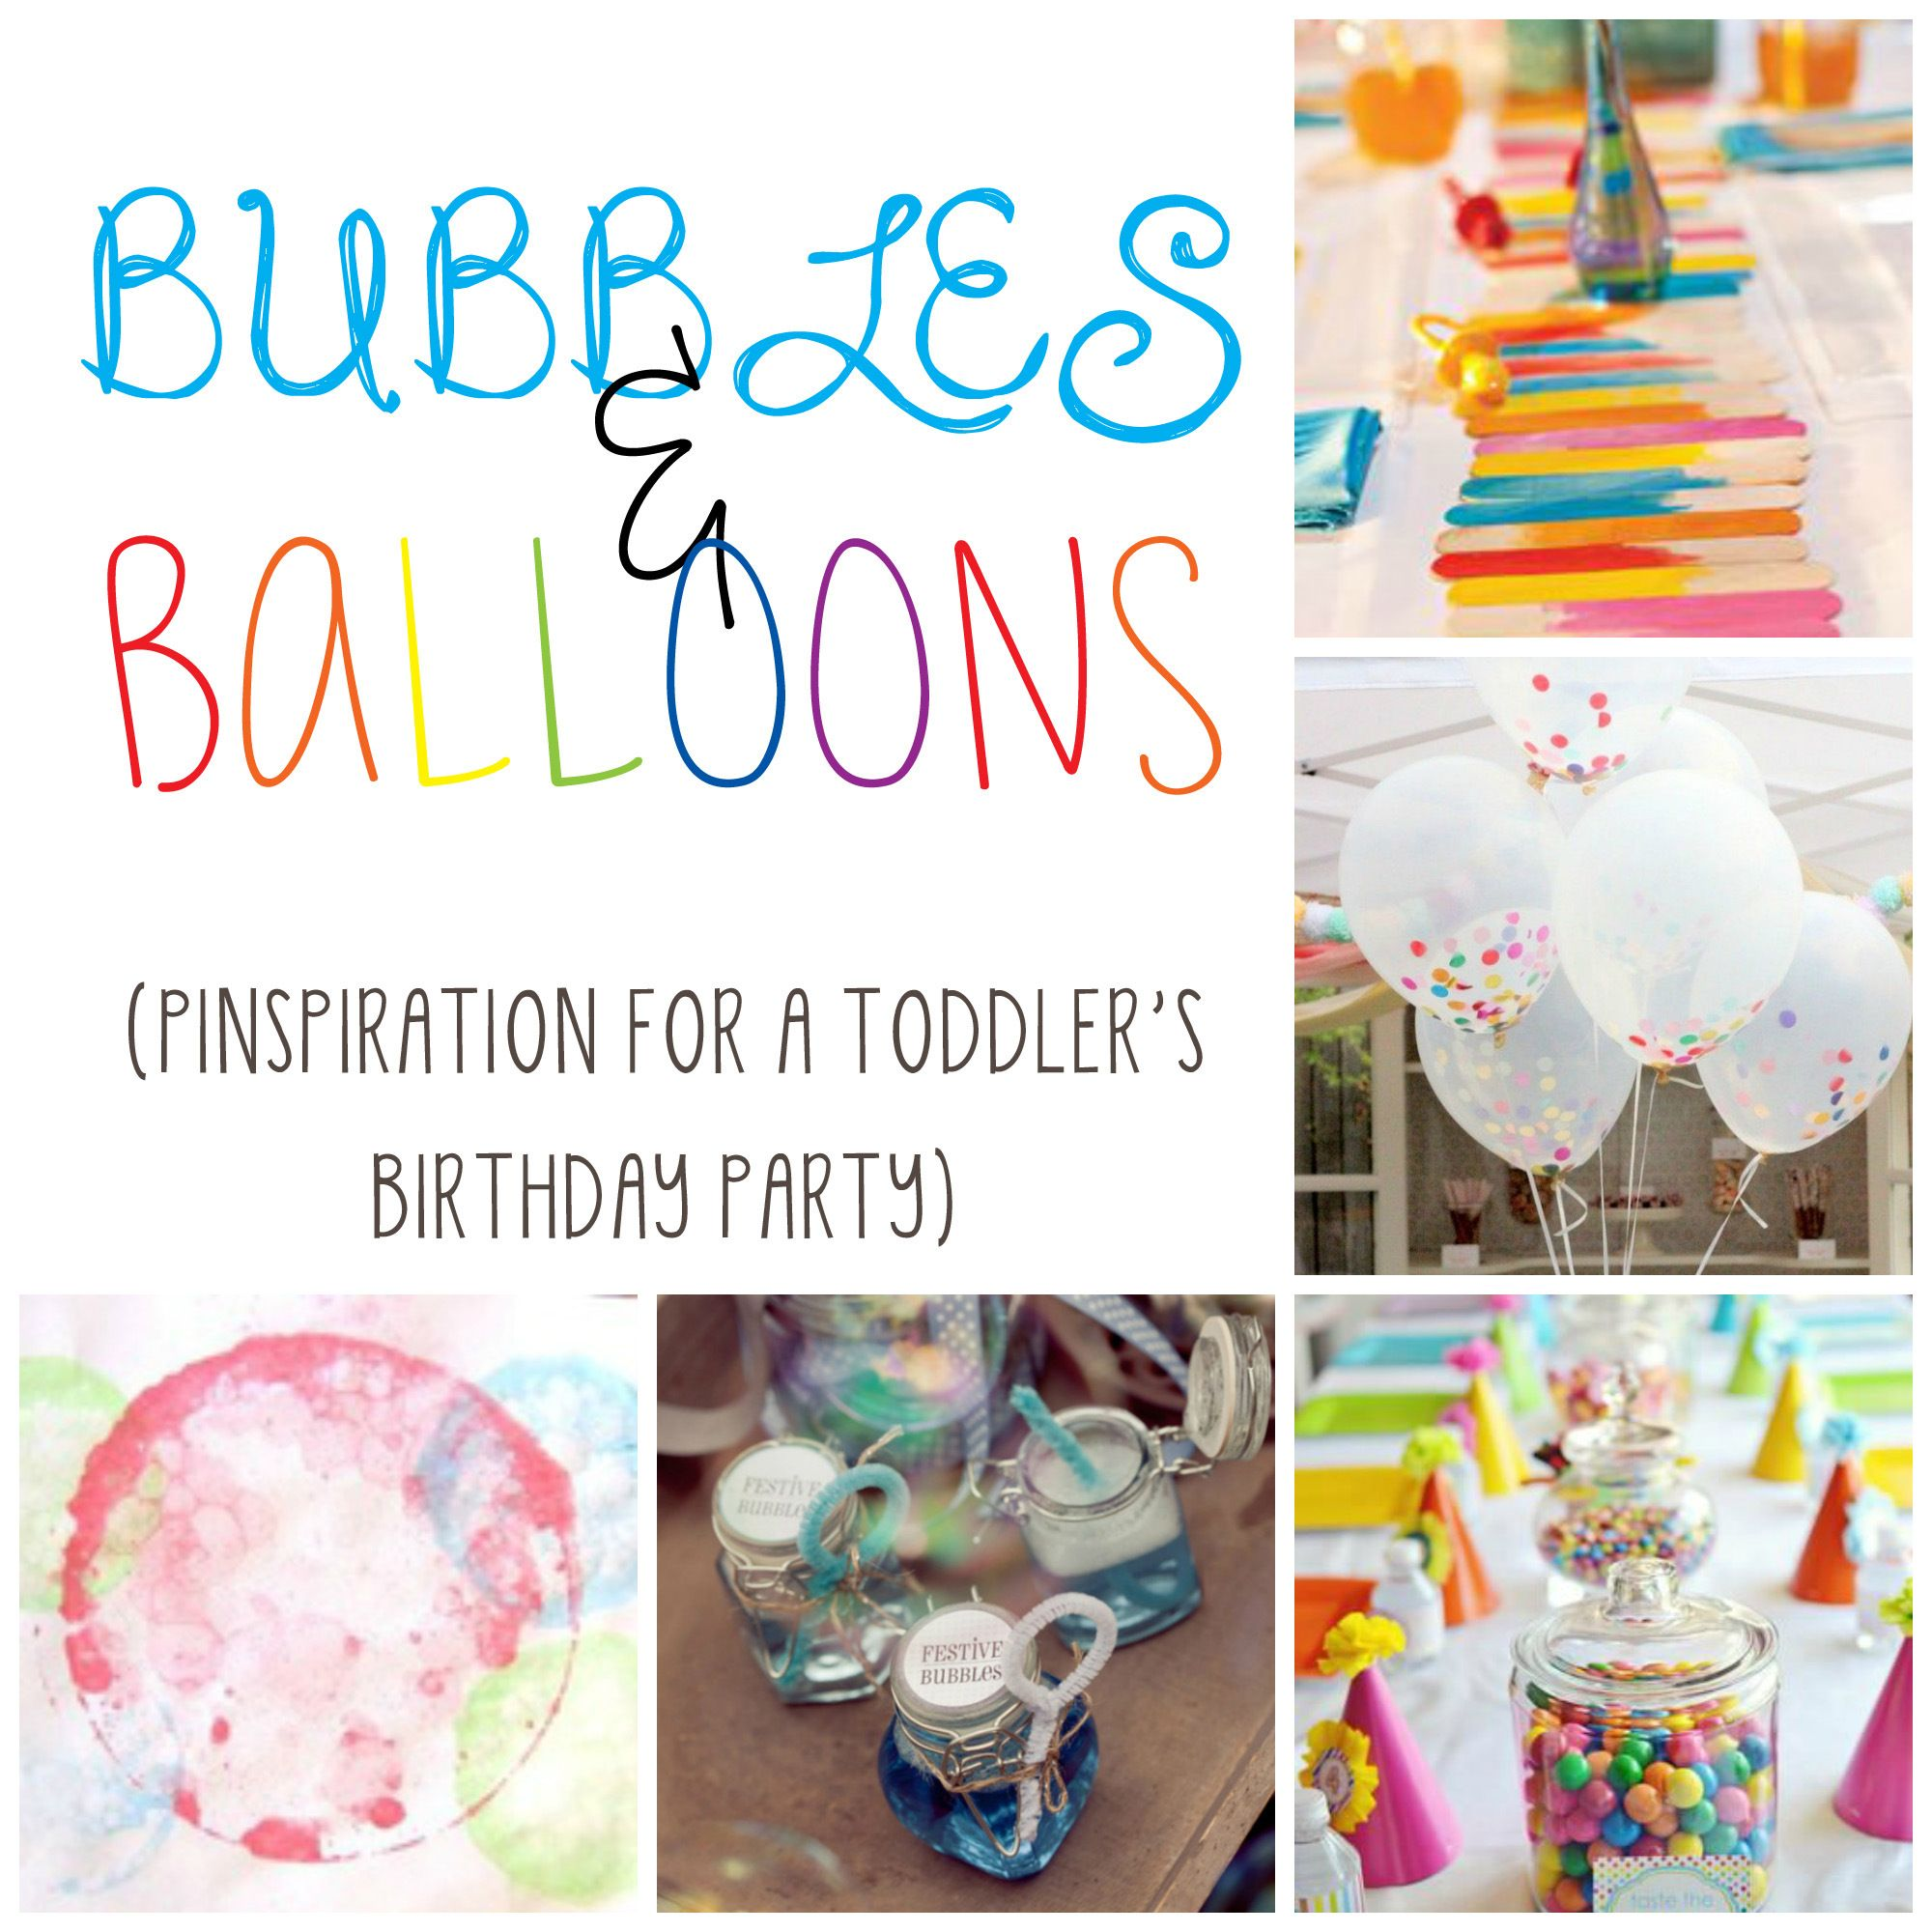 Bubbles Balloons PINspiration For A Toddlers Birthday Party